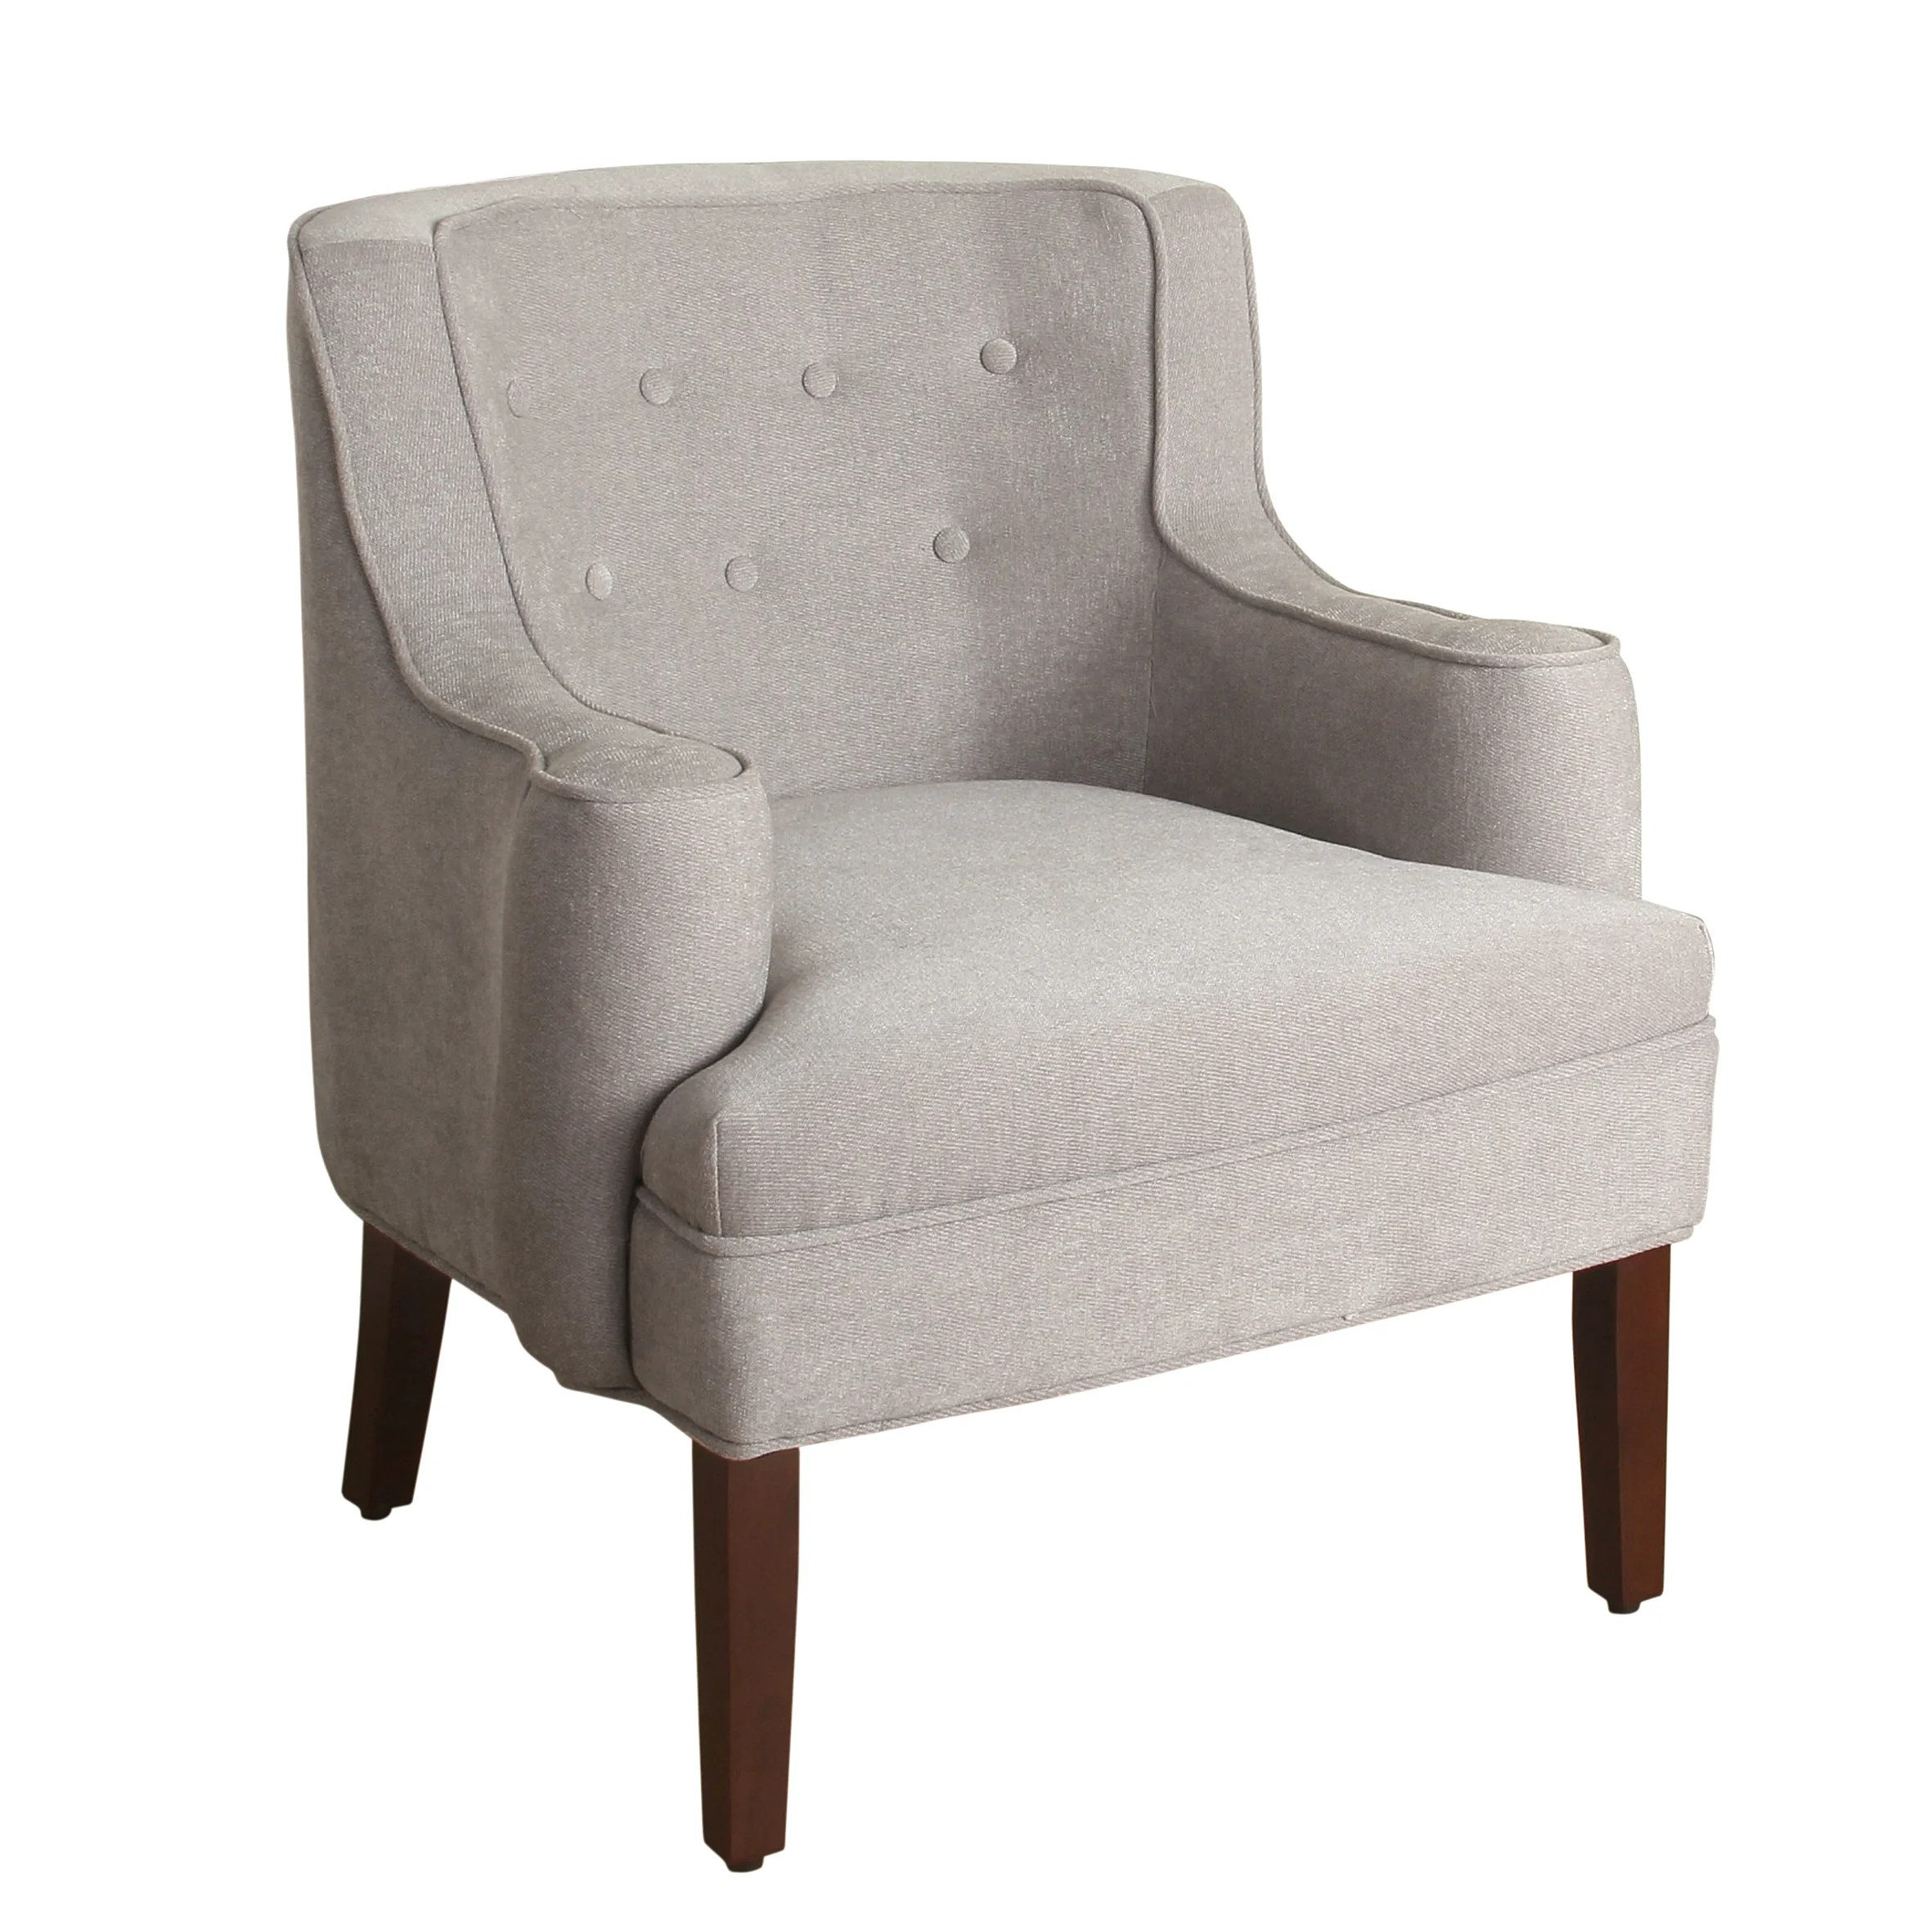 Armed Accent Chairs Homepop Emily Curved Arm Accent Chair Silver Ebay